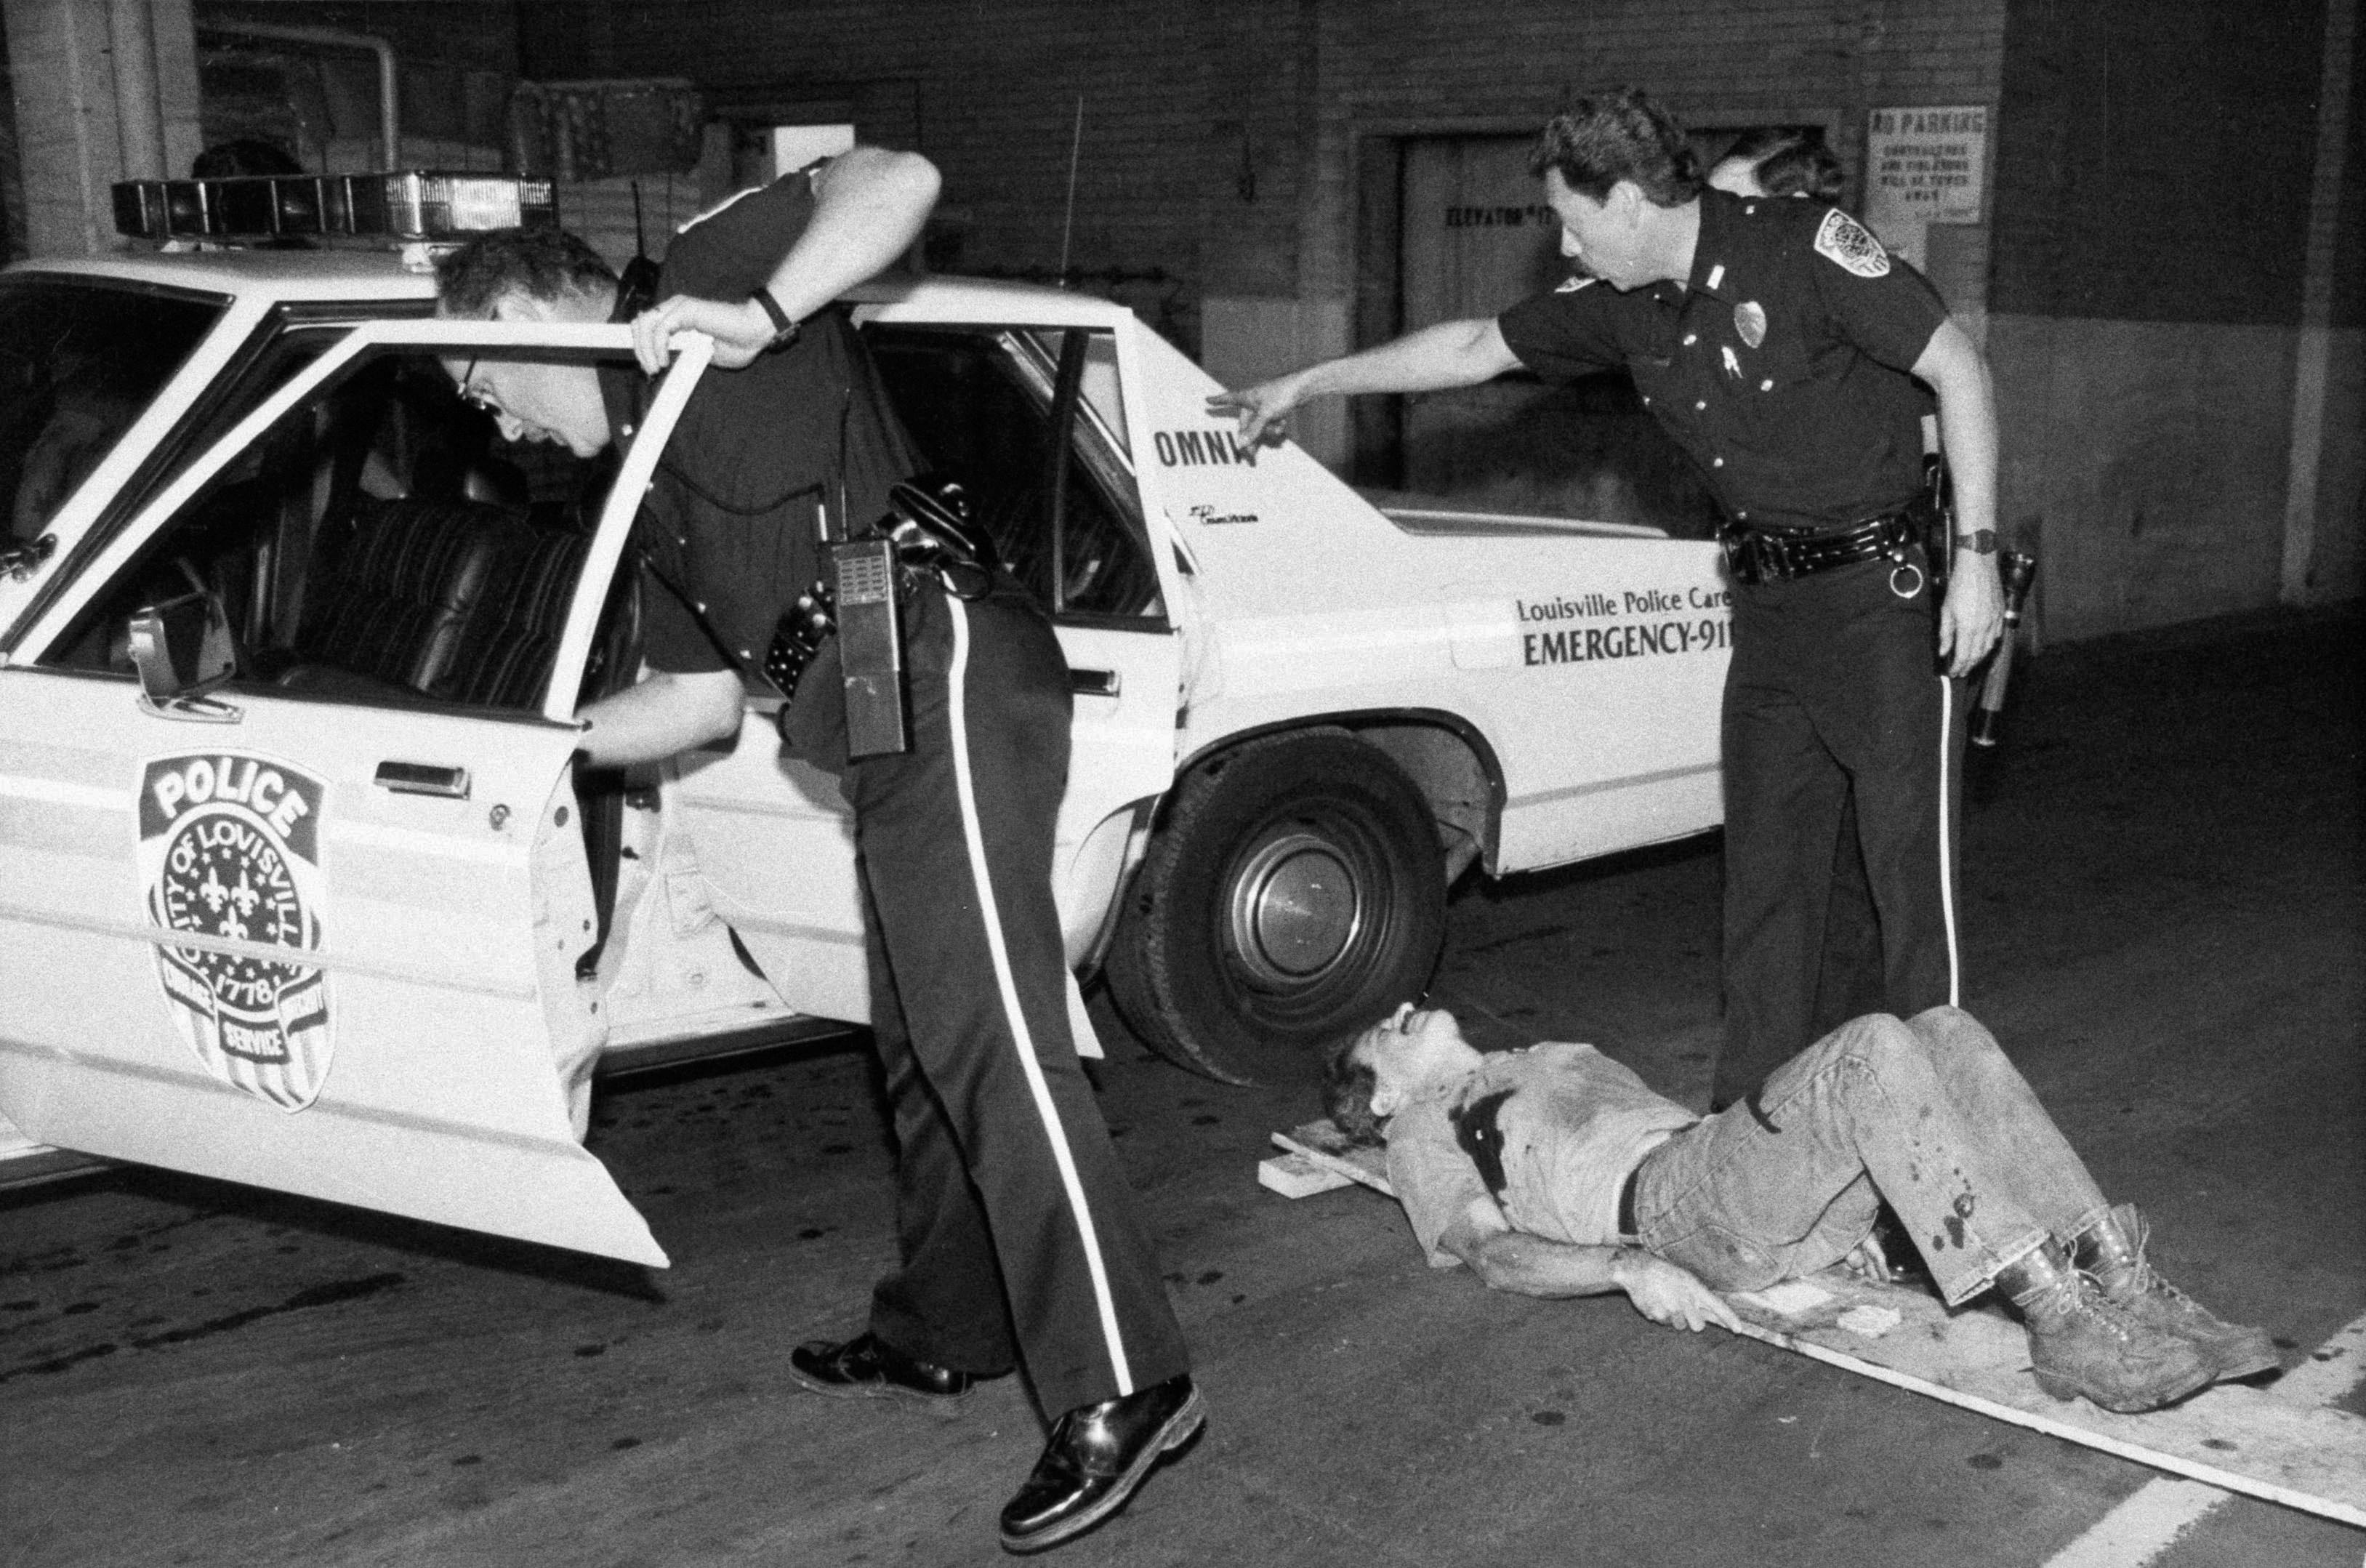 FILE - In this Sept. 14, 1989 file photo, Louisville police prepare to transport one of the victims of the Standard Gravure shooting spree in a police car in downtown Louisville, Ky. AP Photo/Bud Kraft